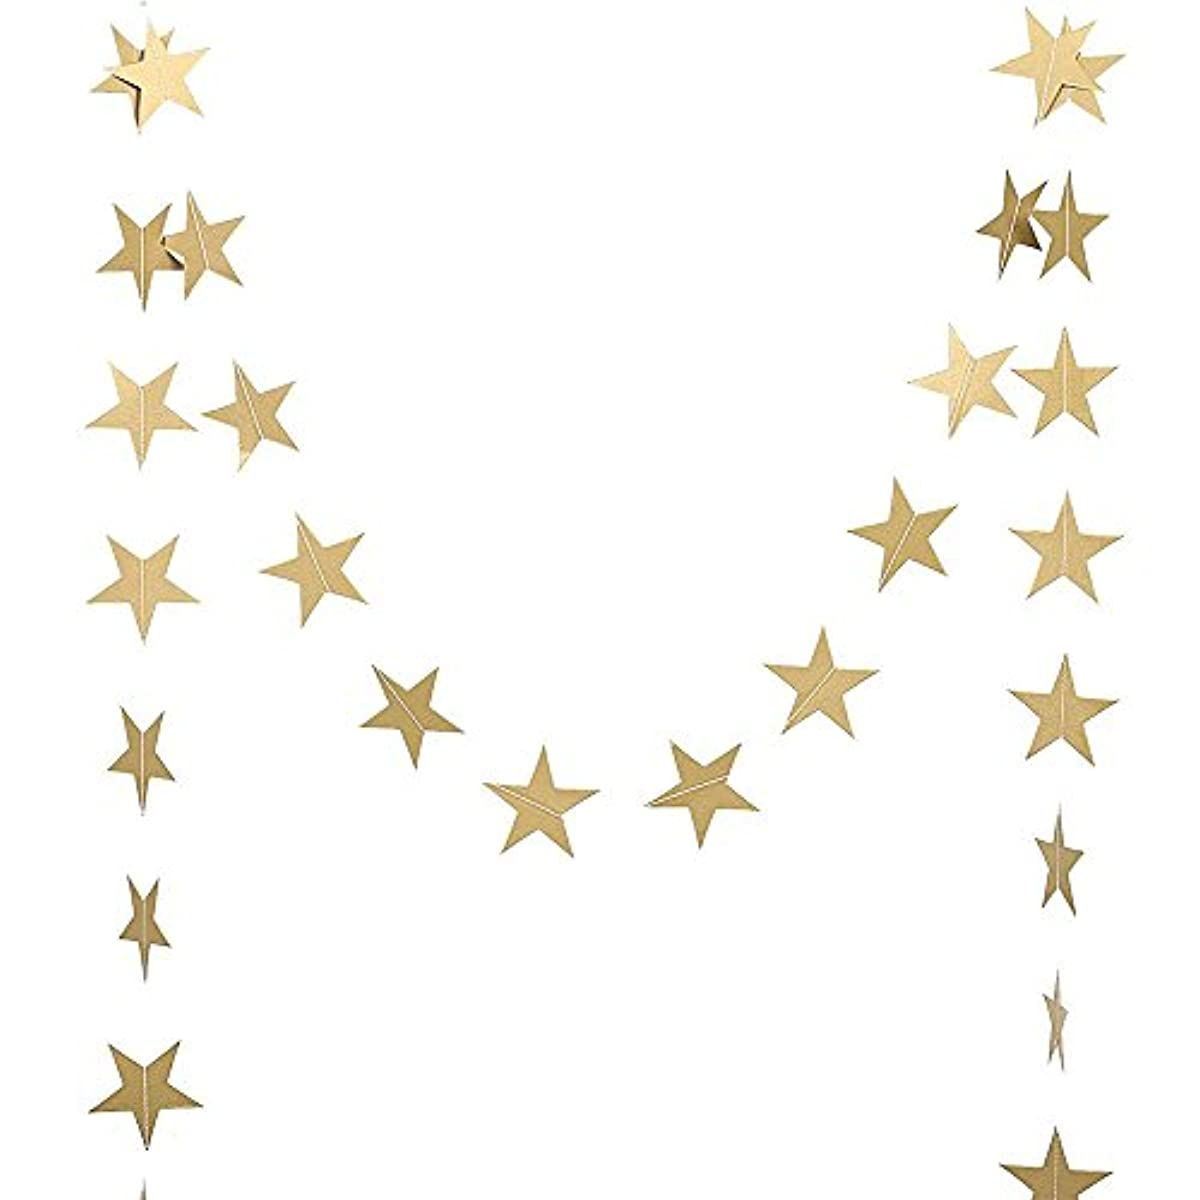 DegGod Gold Sparkle Star Garland, Twikle Paper Five-Pointed Star Garland Banner Bunting Hanging for Party Table Wall Ceiling Decoration Supplies - Set of 2 (4 Meter Each,Gold)